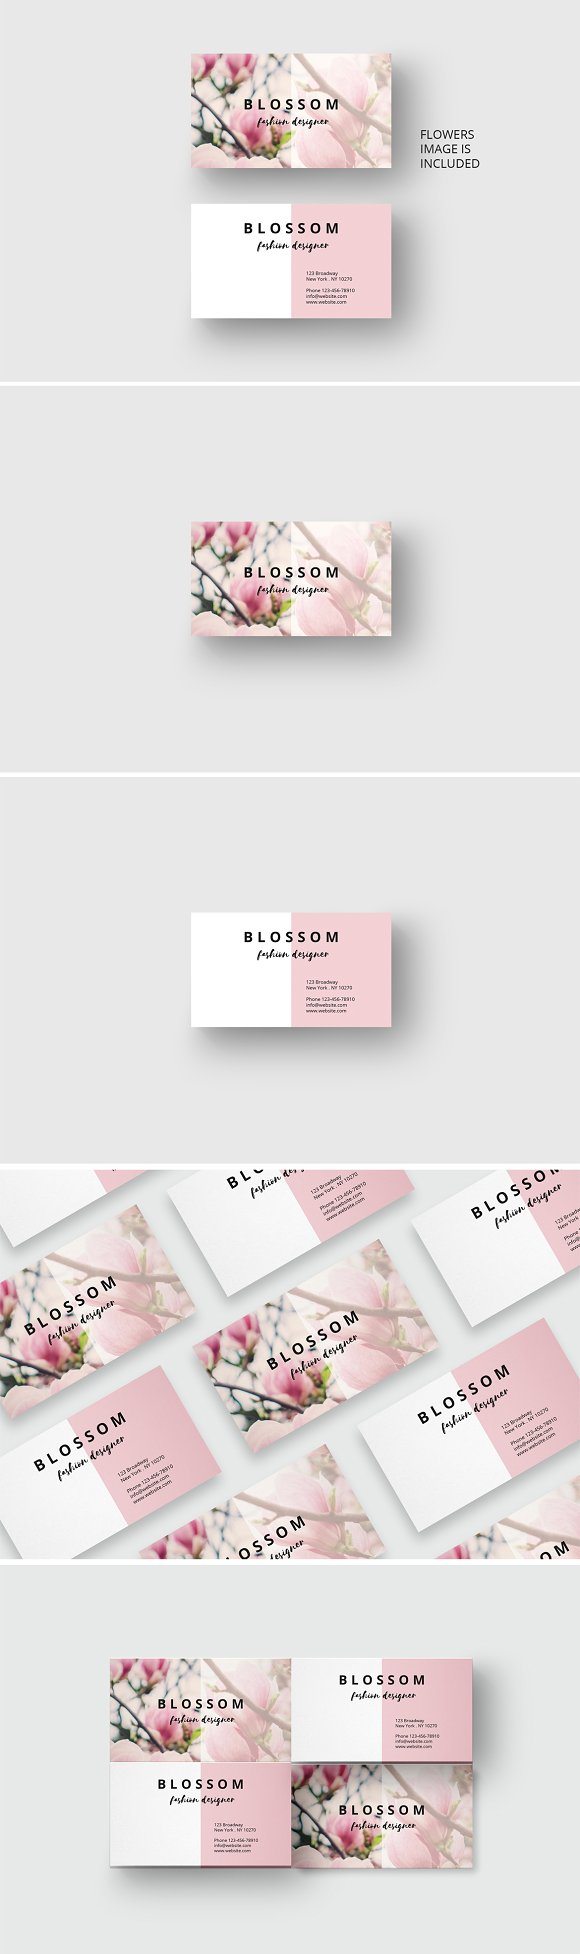 Vintage Flower Business Card Business Card Templates Creative Market